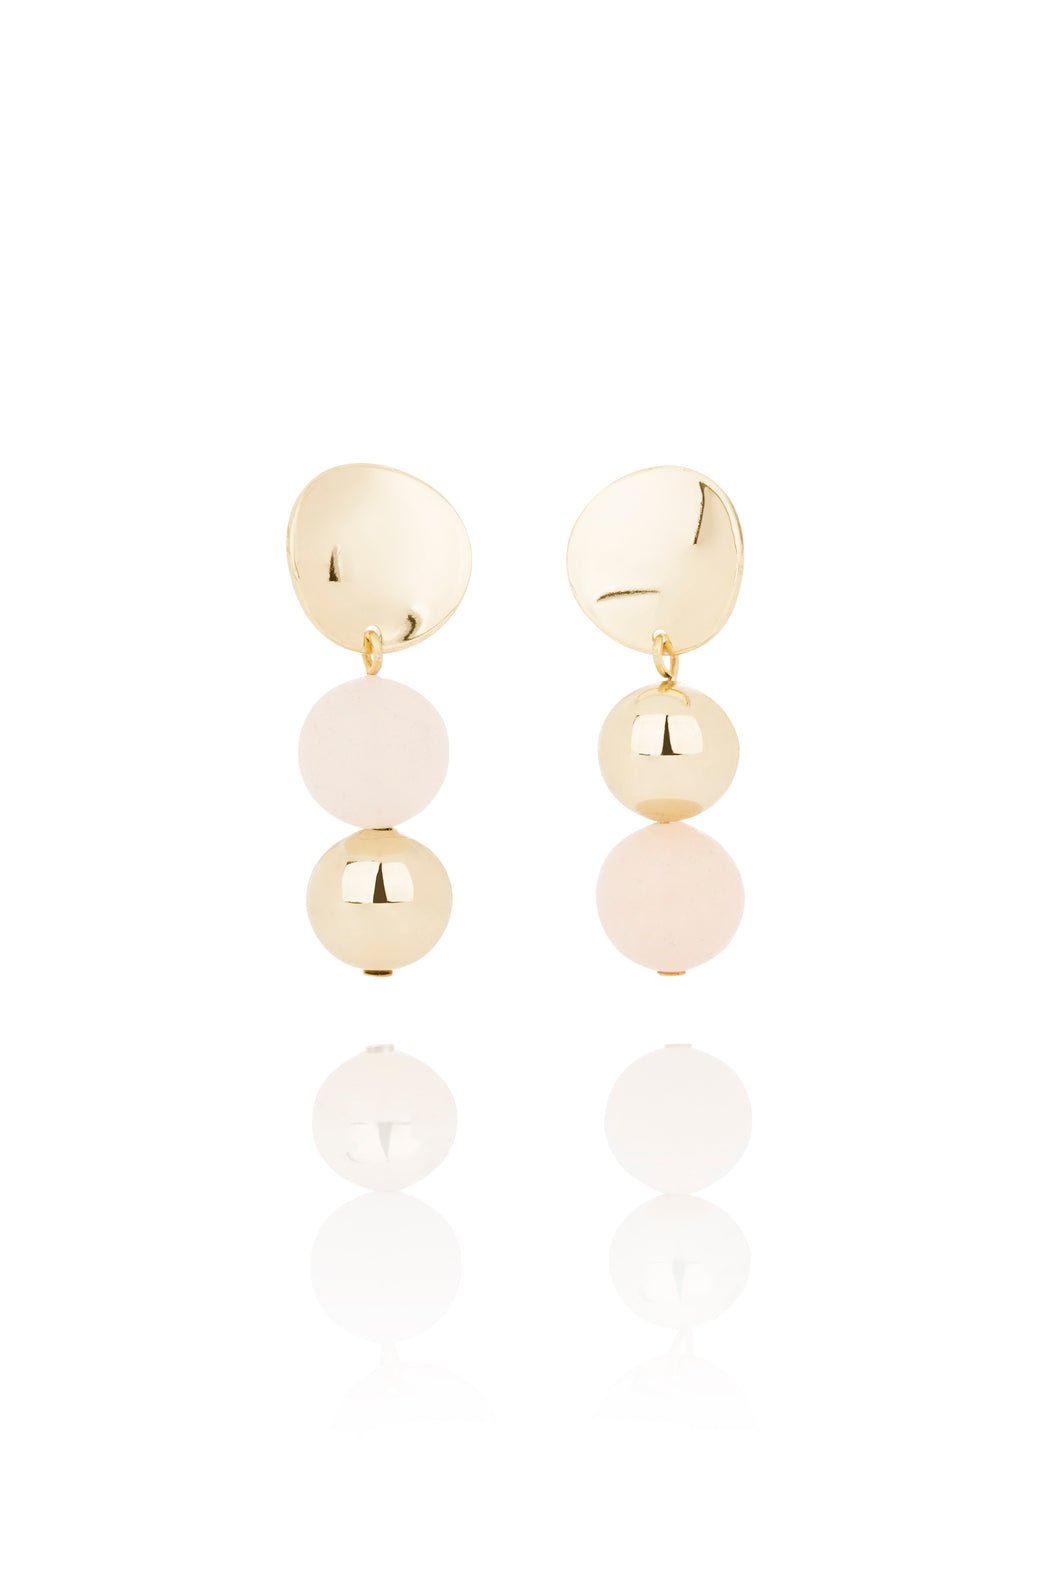 Rose Quartz and Gold Earrings